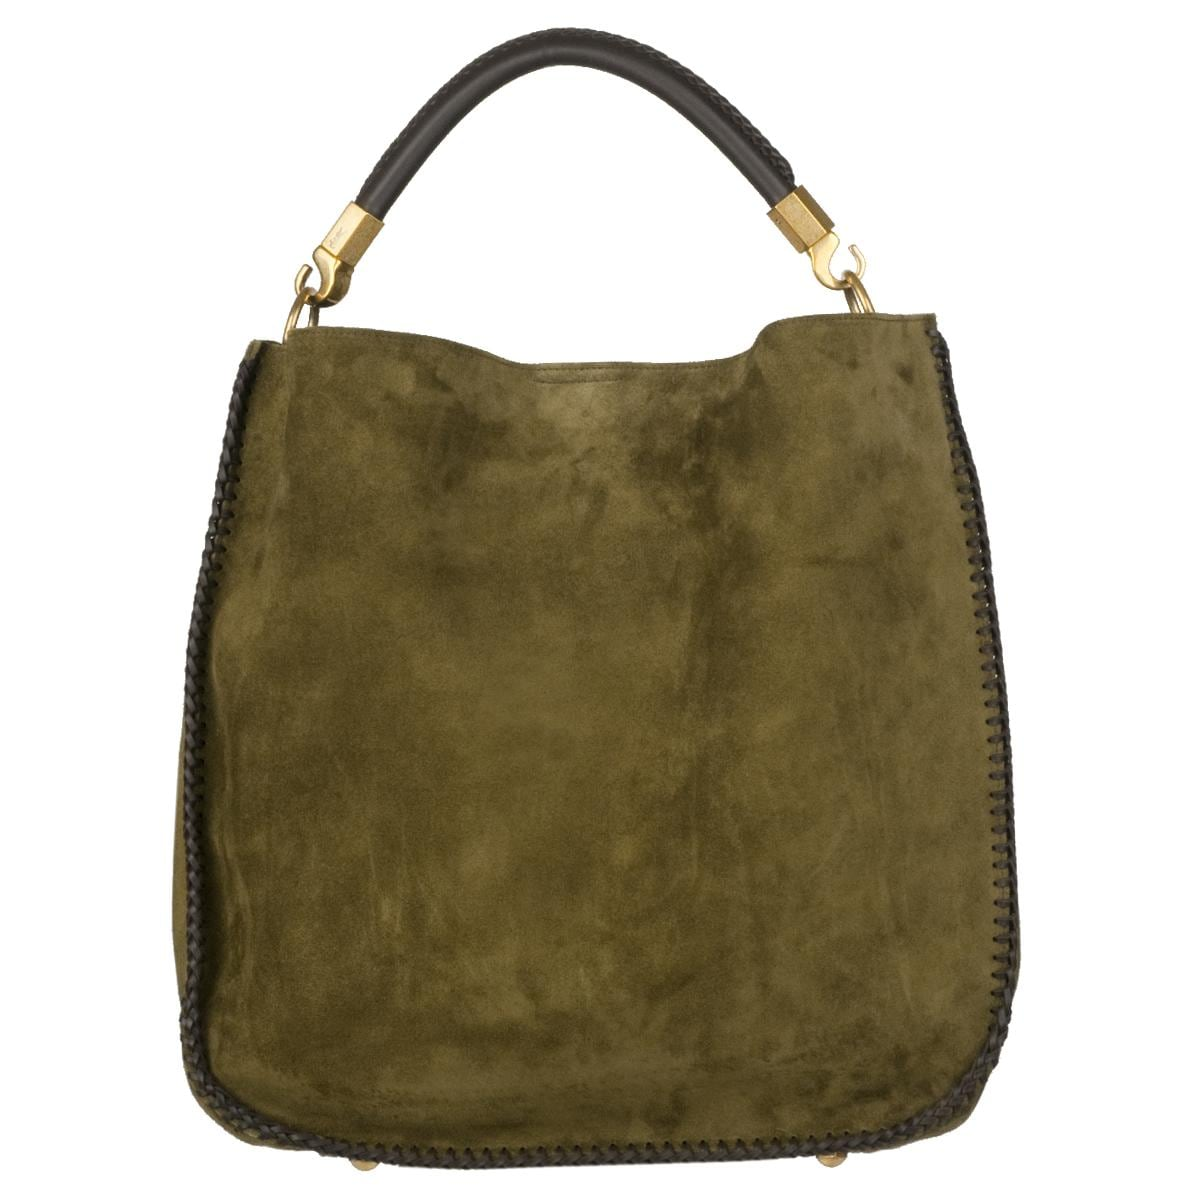 Yves Saint Laurent Green Suede Hobo Bag - Free Shipping Today ...